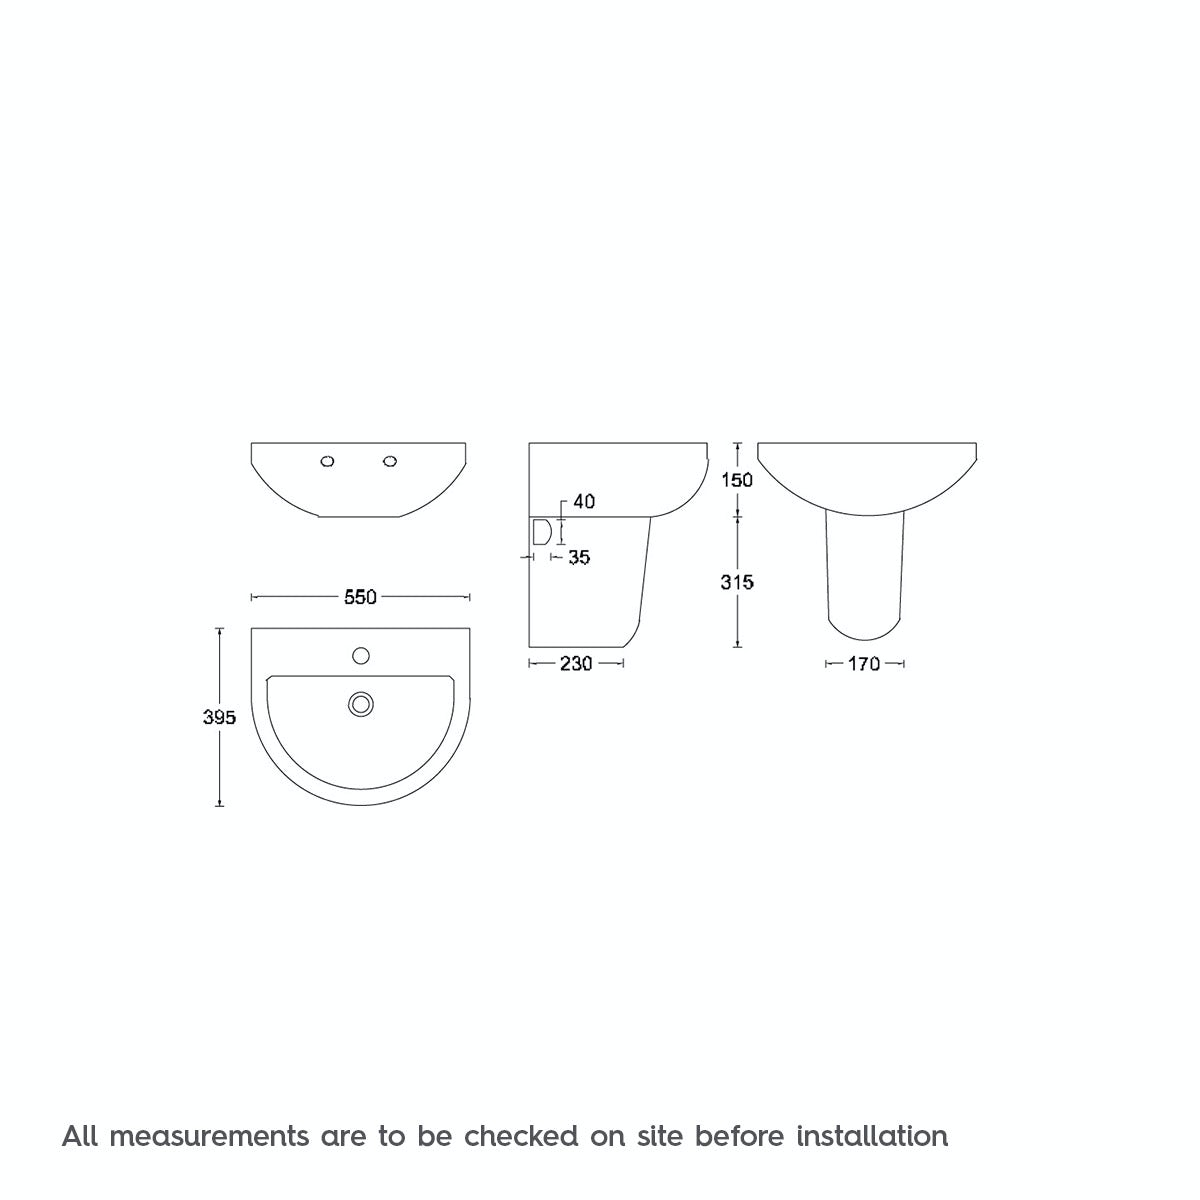 Dimensions for 450 basin